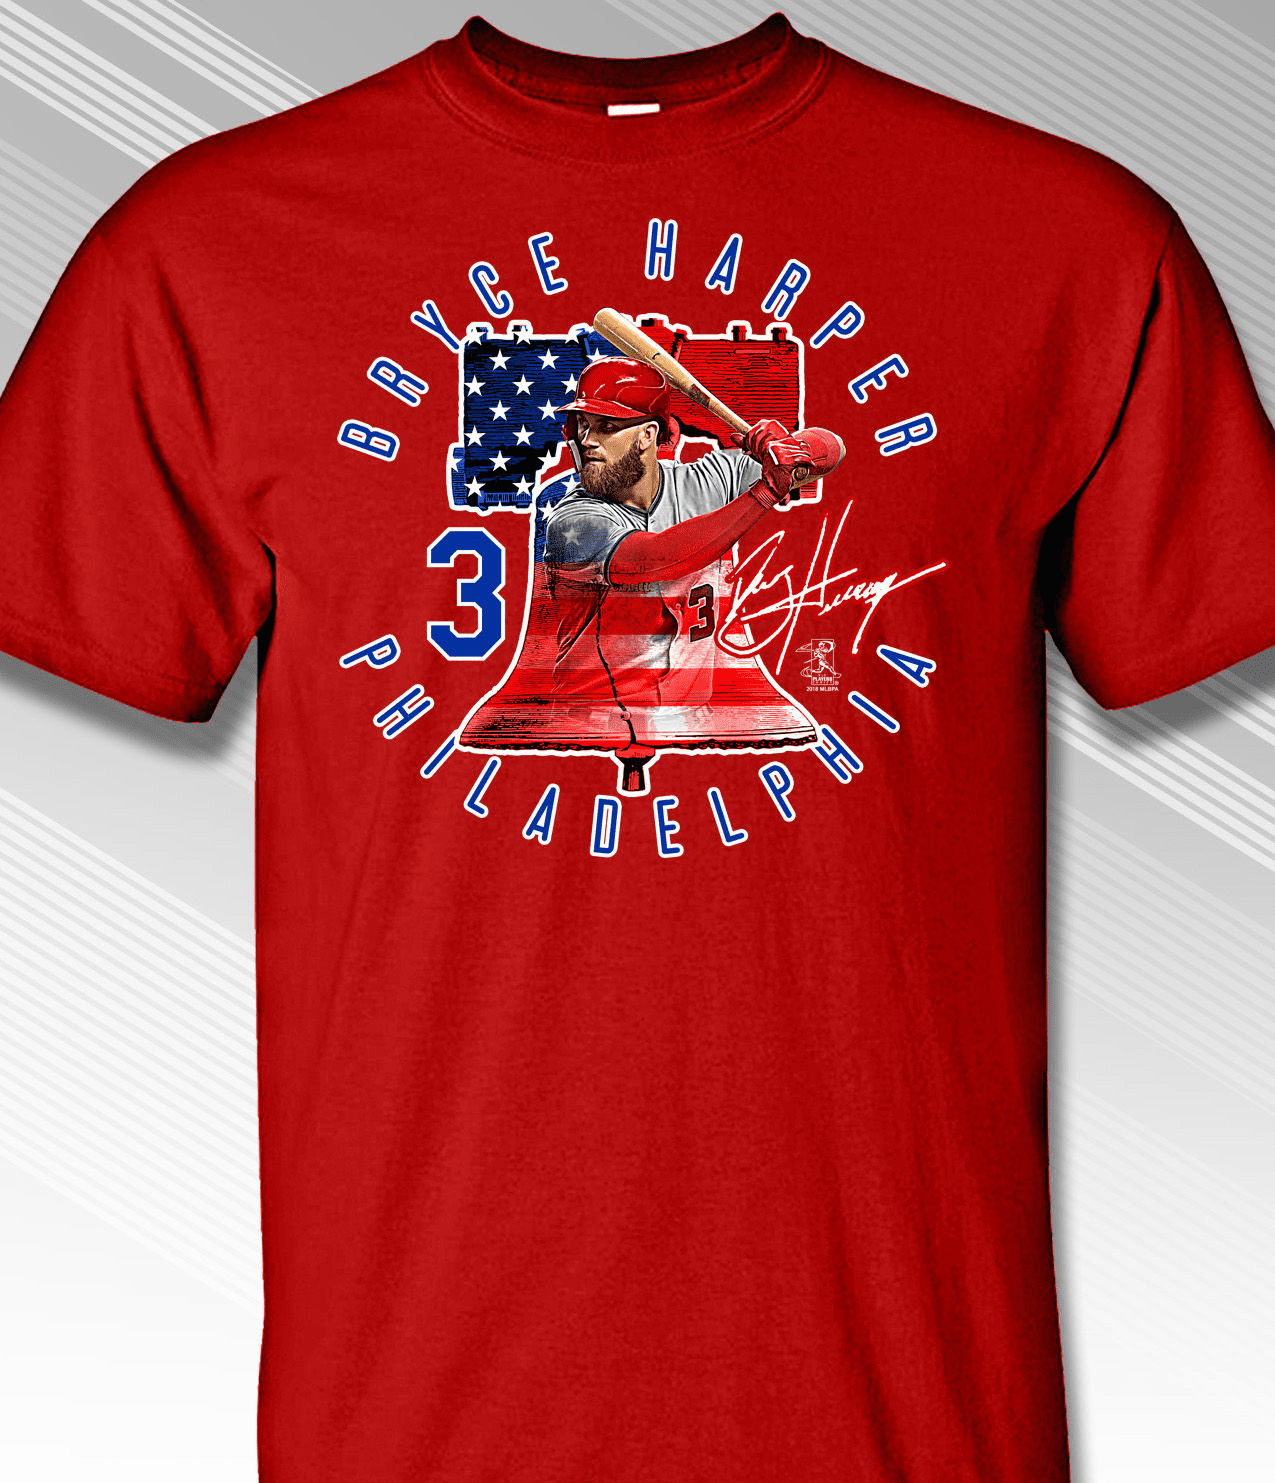 Bryce Harper Philadelphia Liberty Bell #3 T-Shirt<br>Short or Long Sleeve<br>Youth Med to Adult 4X